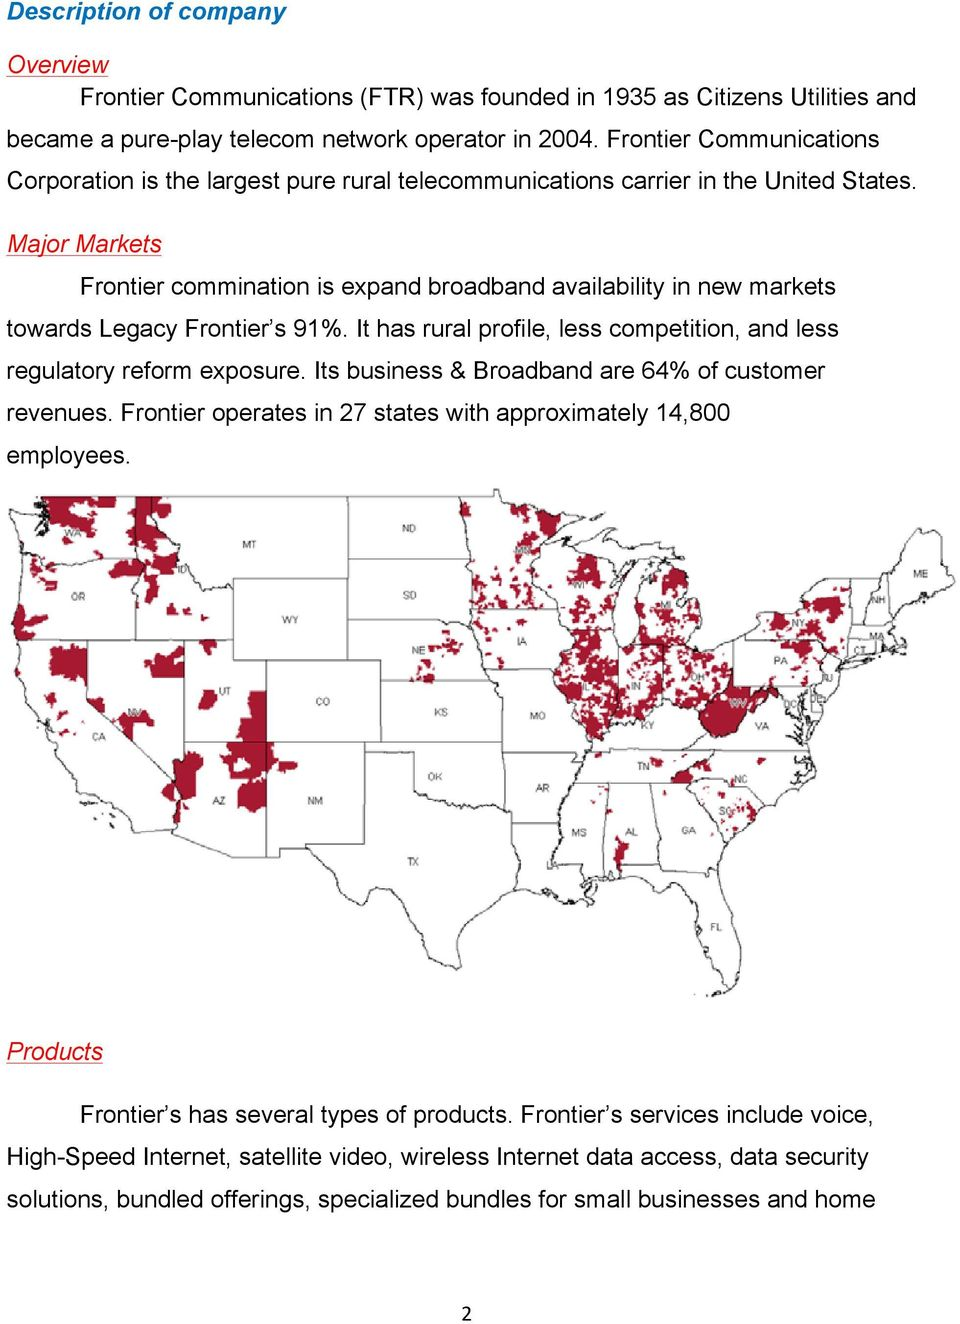 Major Markets Frontier commination is expand broadband availability in new markets towards Legacy Frontier s 91%. It has rural profile, less competition, and less regulatory reform exposure.